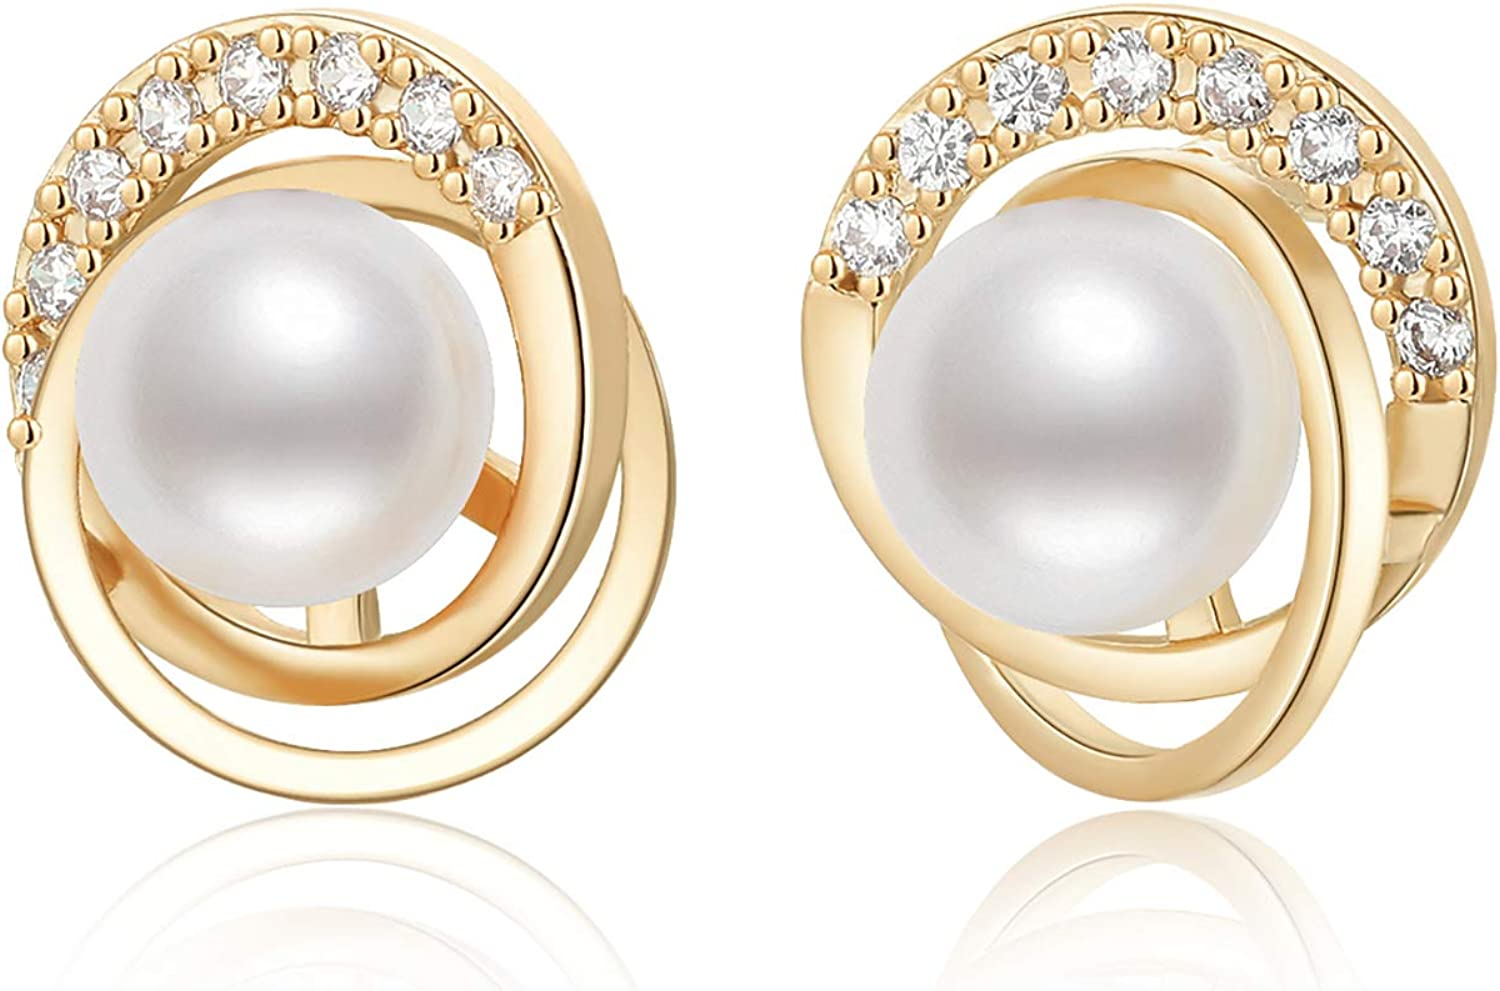 Pearl Stud Earrings for Women Pearl Ear Studs Freshwater Cultured Hypoallergenic Pearl Jewelry Gift for Girls White Pearl